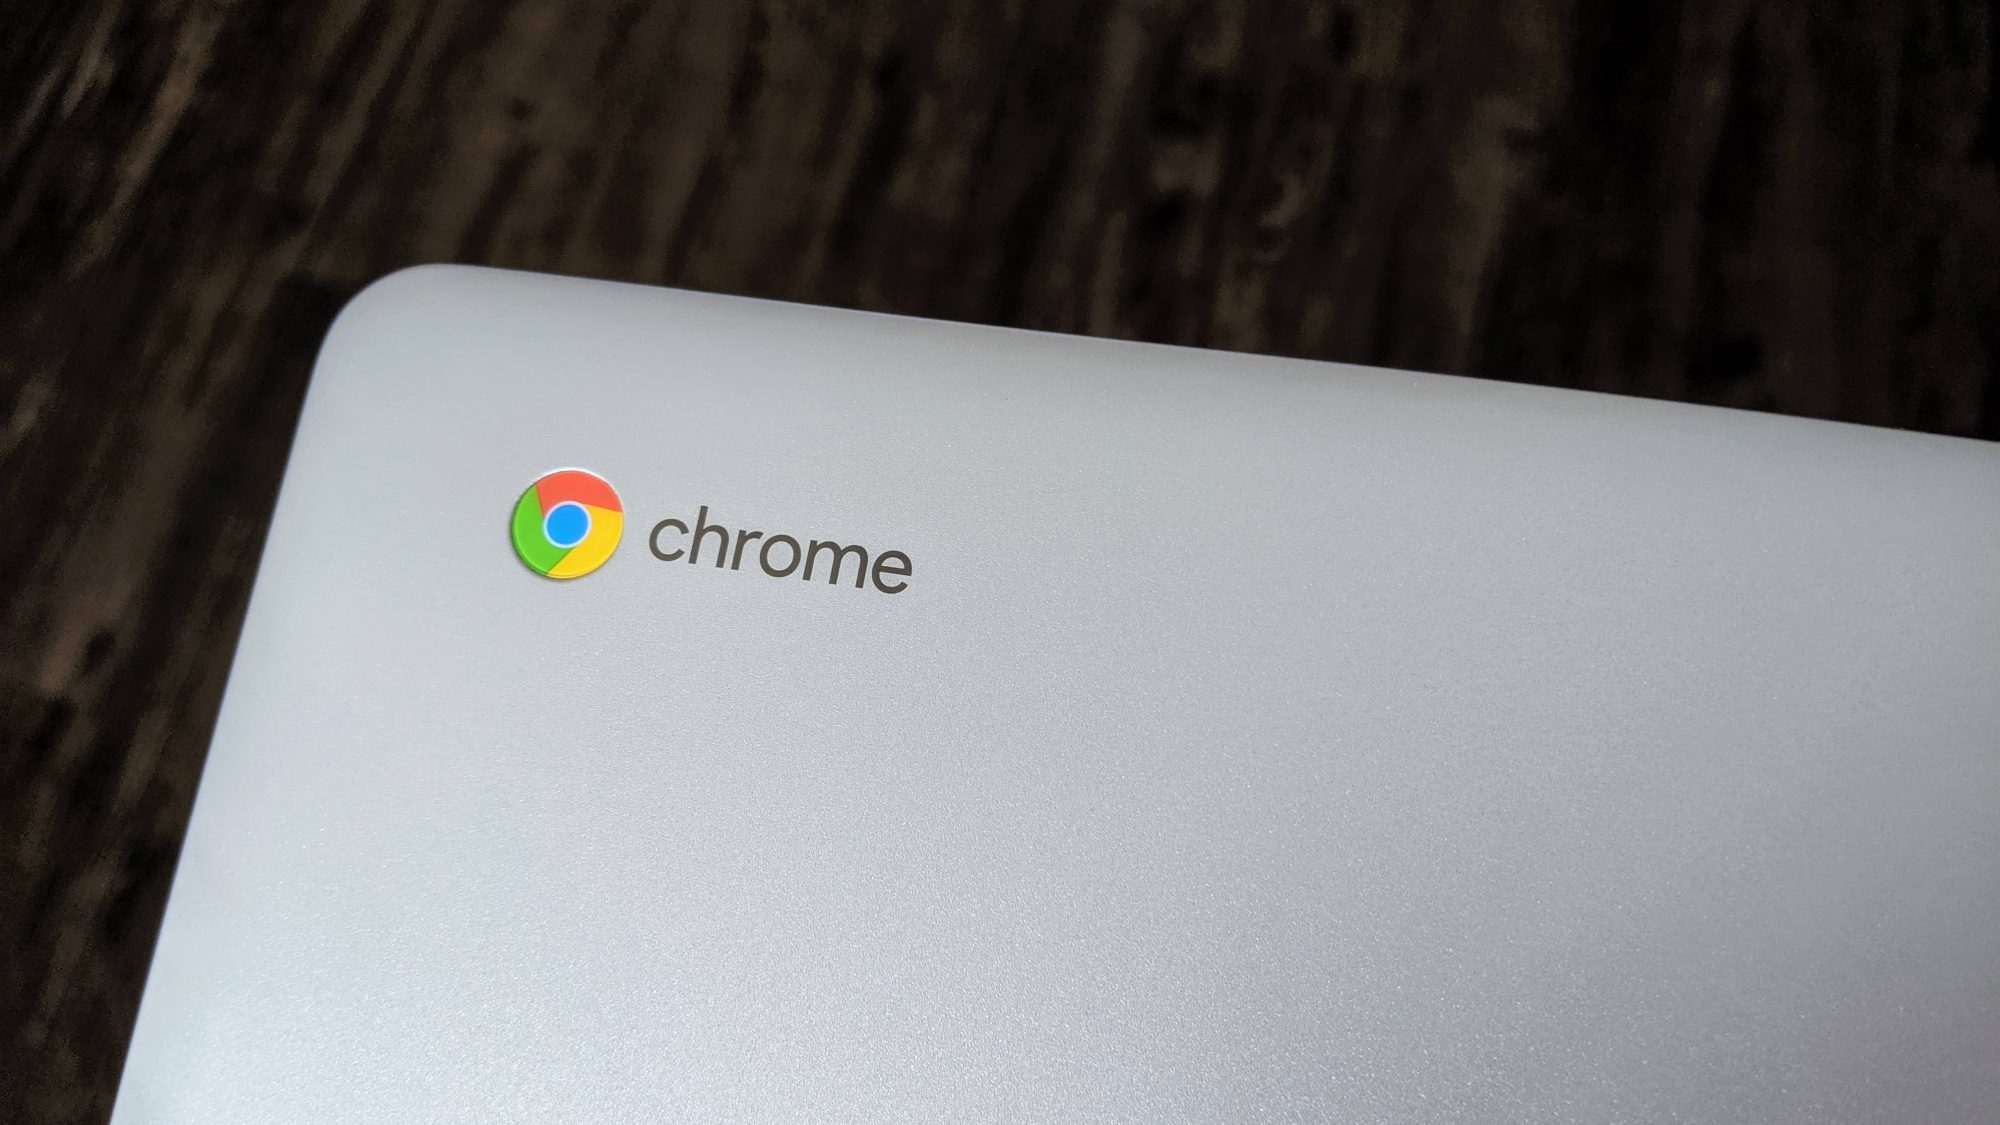 Upcoming Chromebook 'Dratini' spotted in Geekbench with monster specs on board